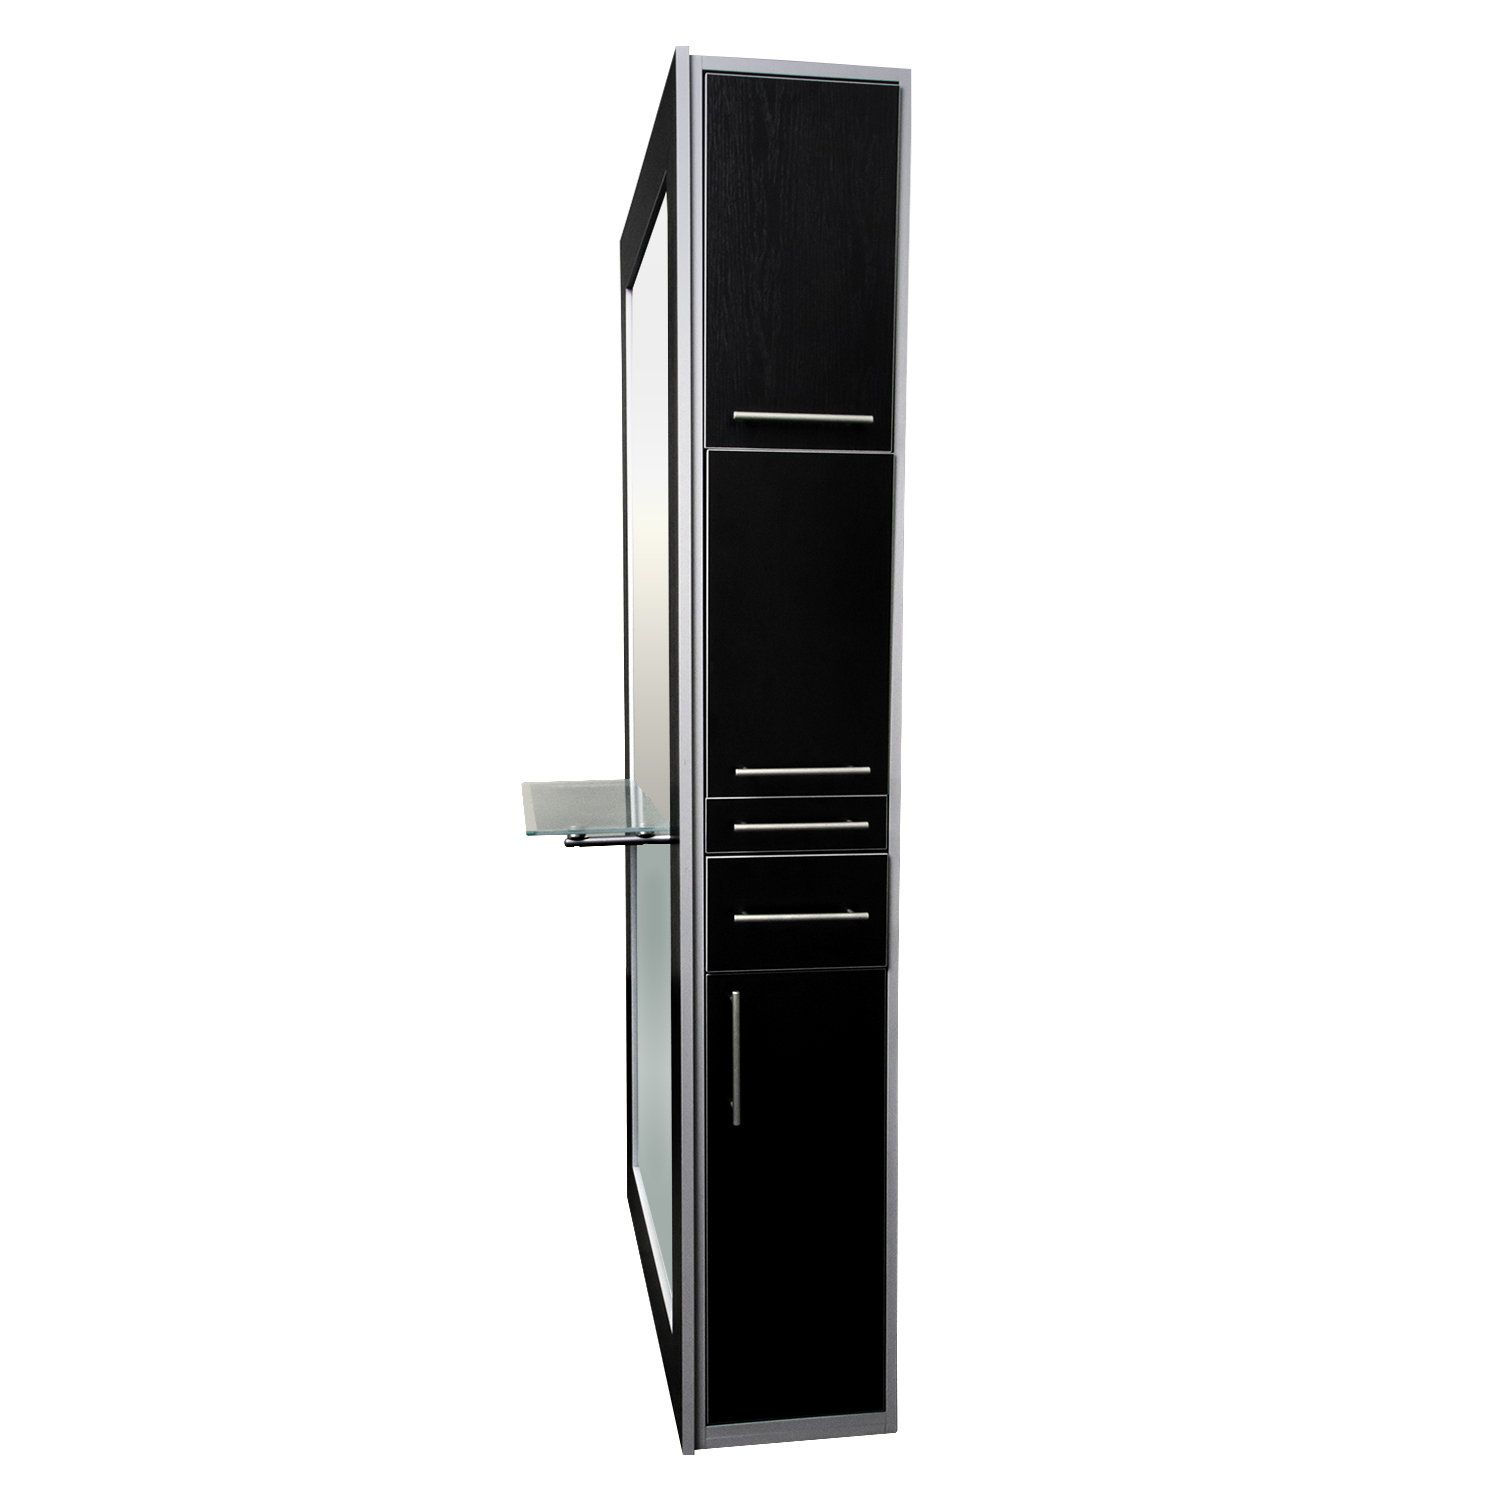 Fusion Mirrored Styling Station Black alternative product image 4